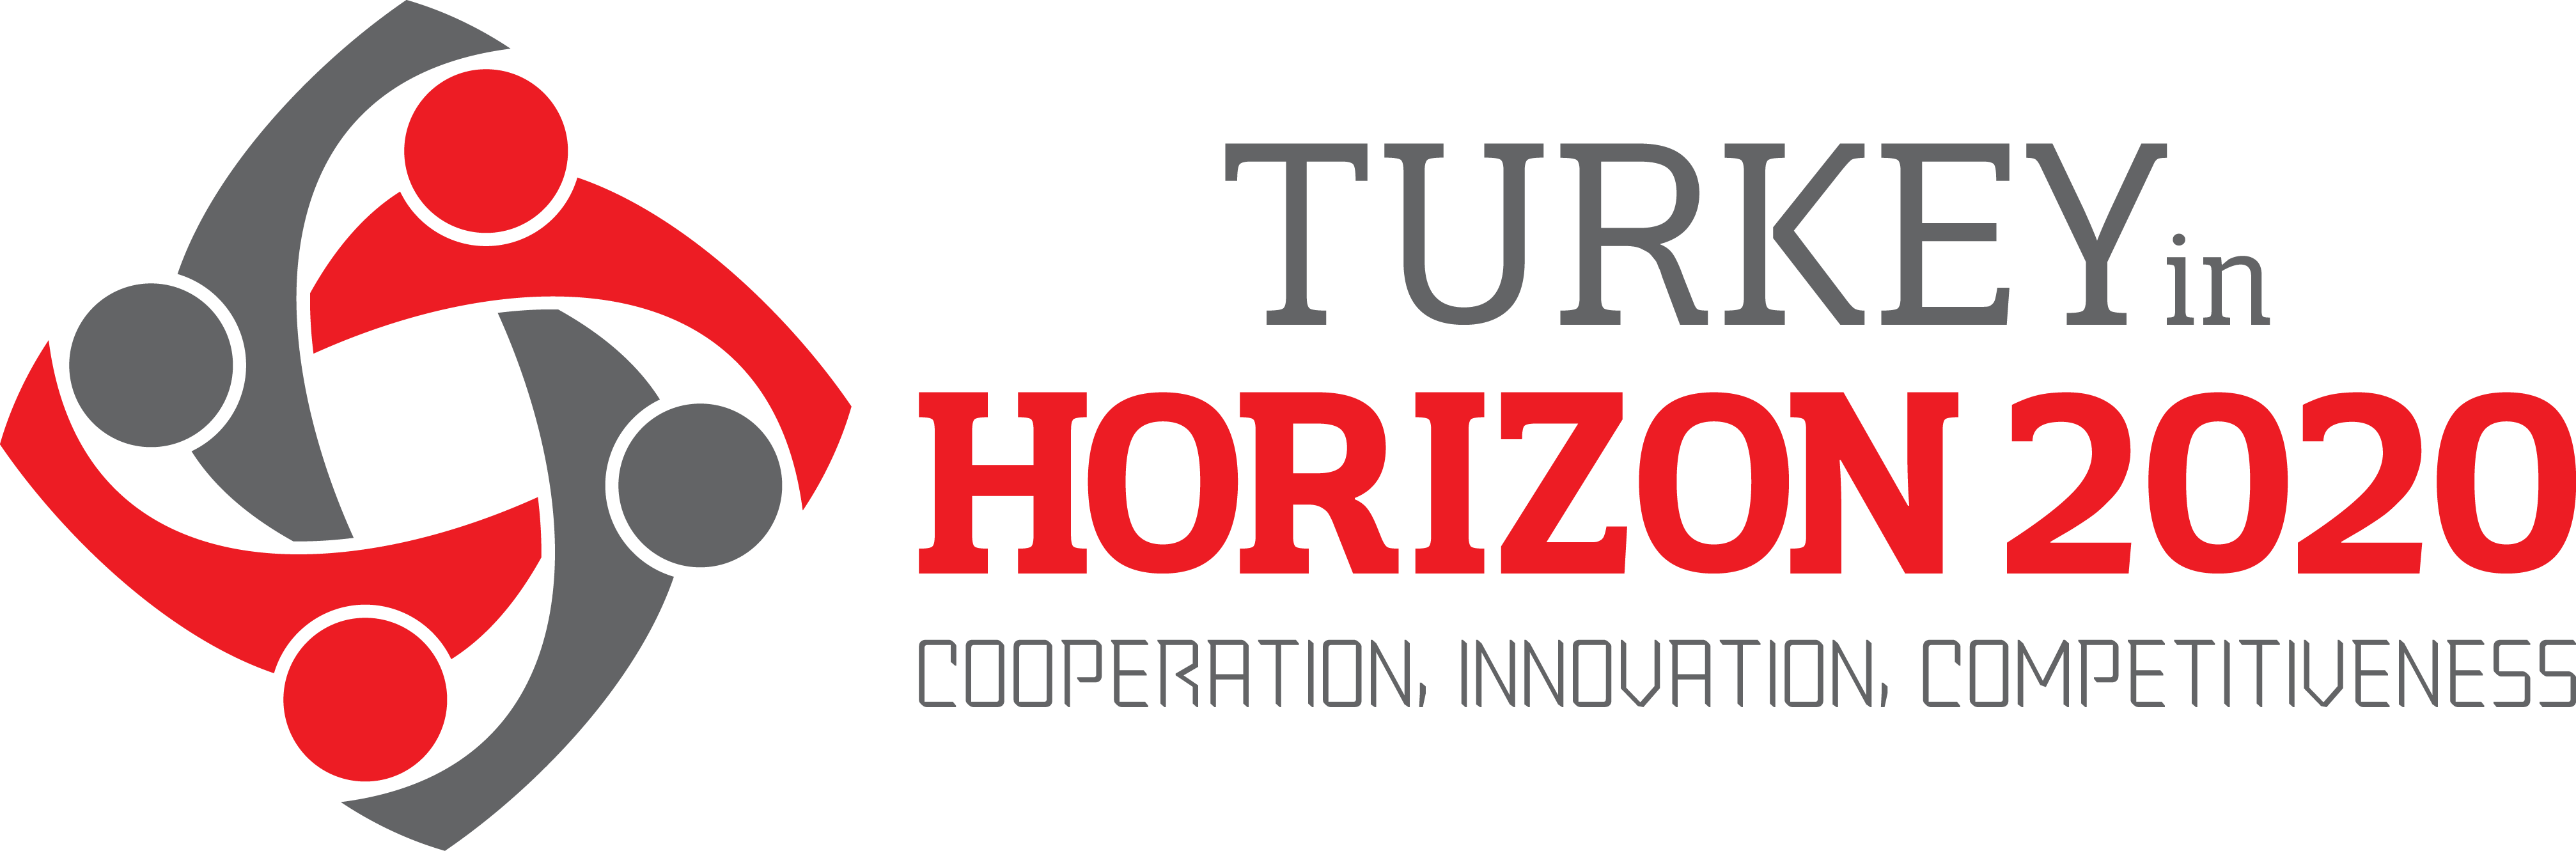 Turkey in H2020 | Helpdesk Help Center home page